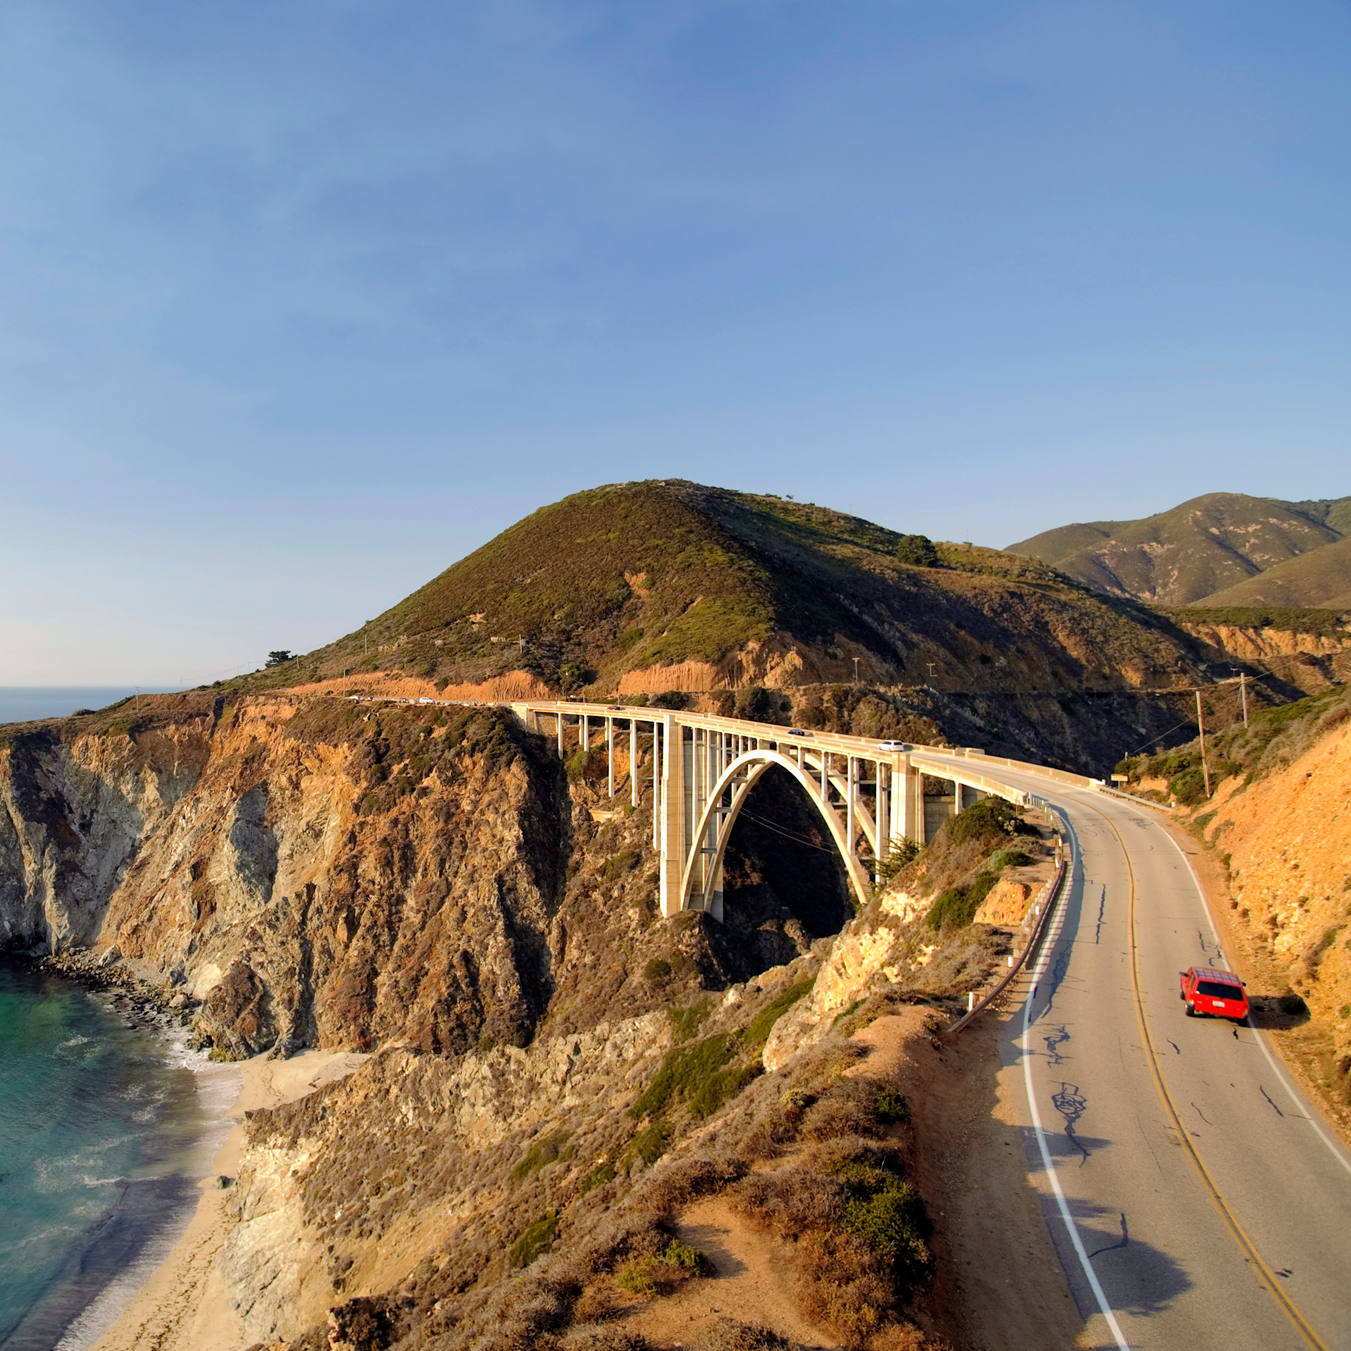 The 15 Best Scenic Road Trips in America